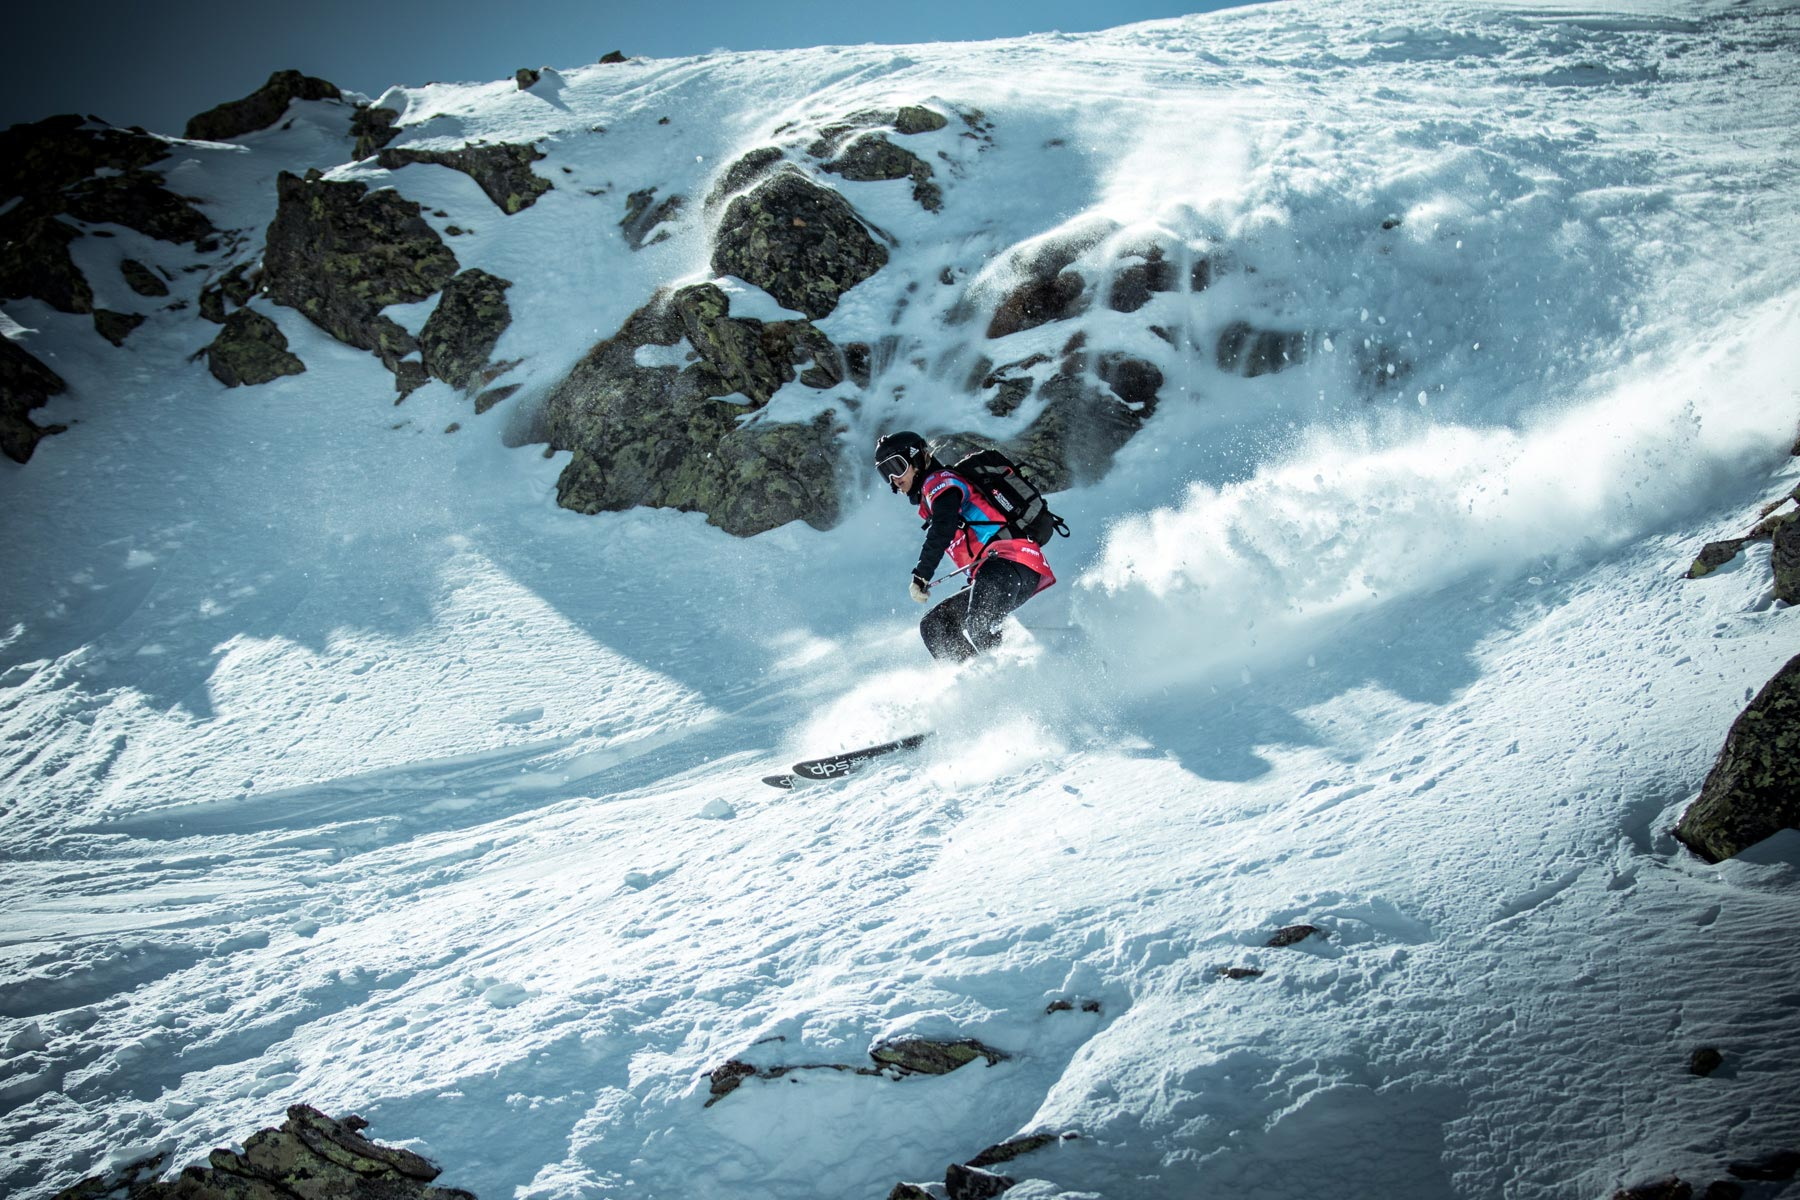 Open Faces Freeride Contests 2017 - Obergurgl Hochgurgl - Foto: Moritz Ablinger